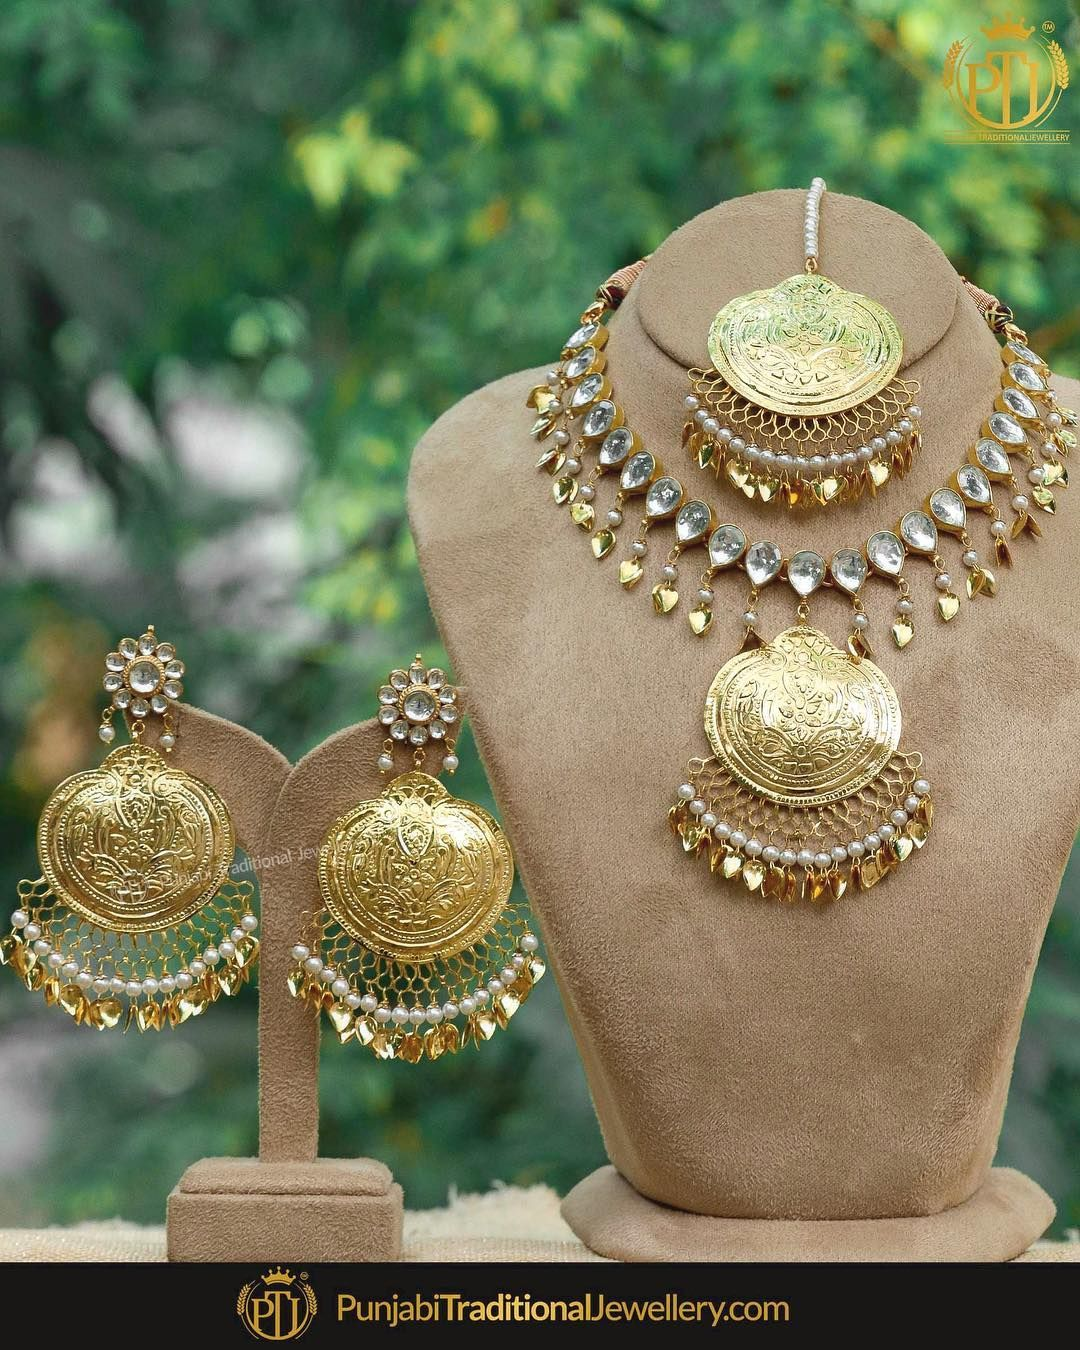 "334fd34b6c967 Punjabi Traditional Jewellery™ on Instagram: ""Love me for who i am ..."